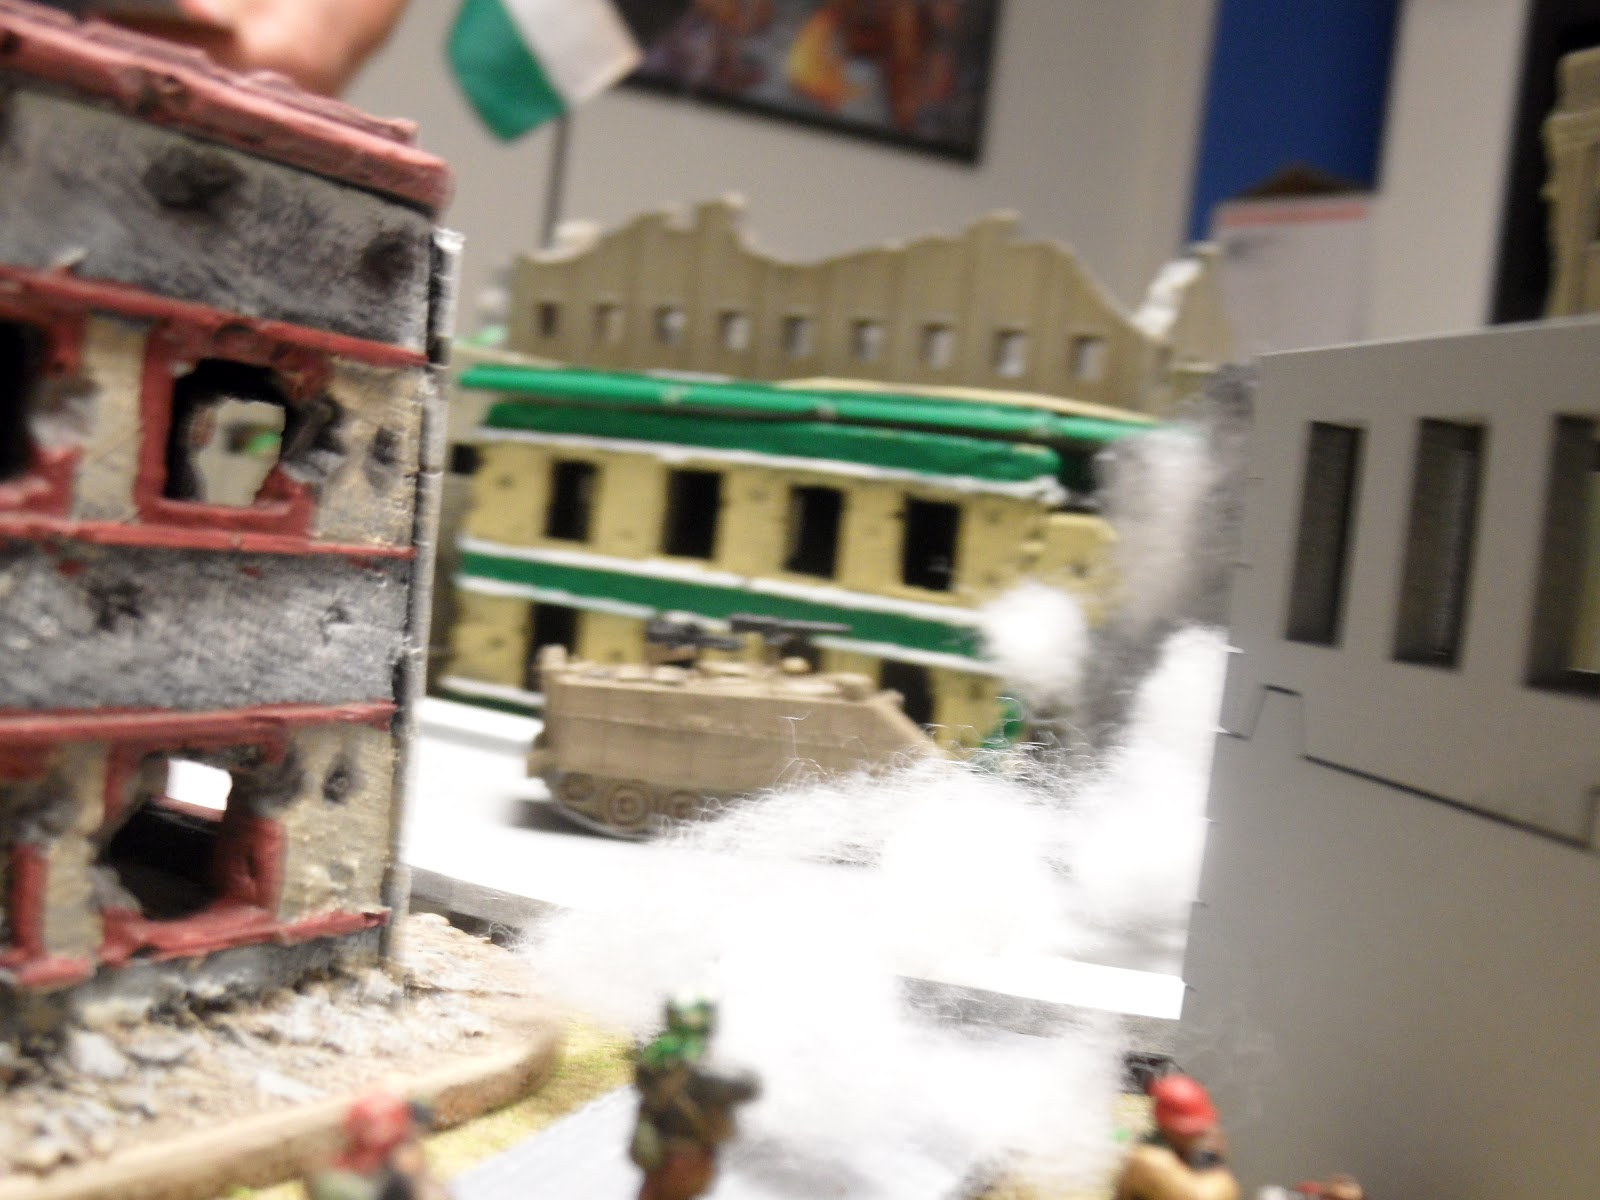 The cell driven out by the Magach gets a second chance!